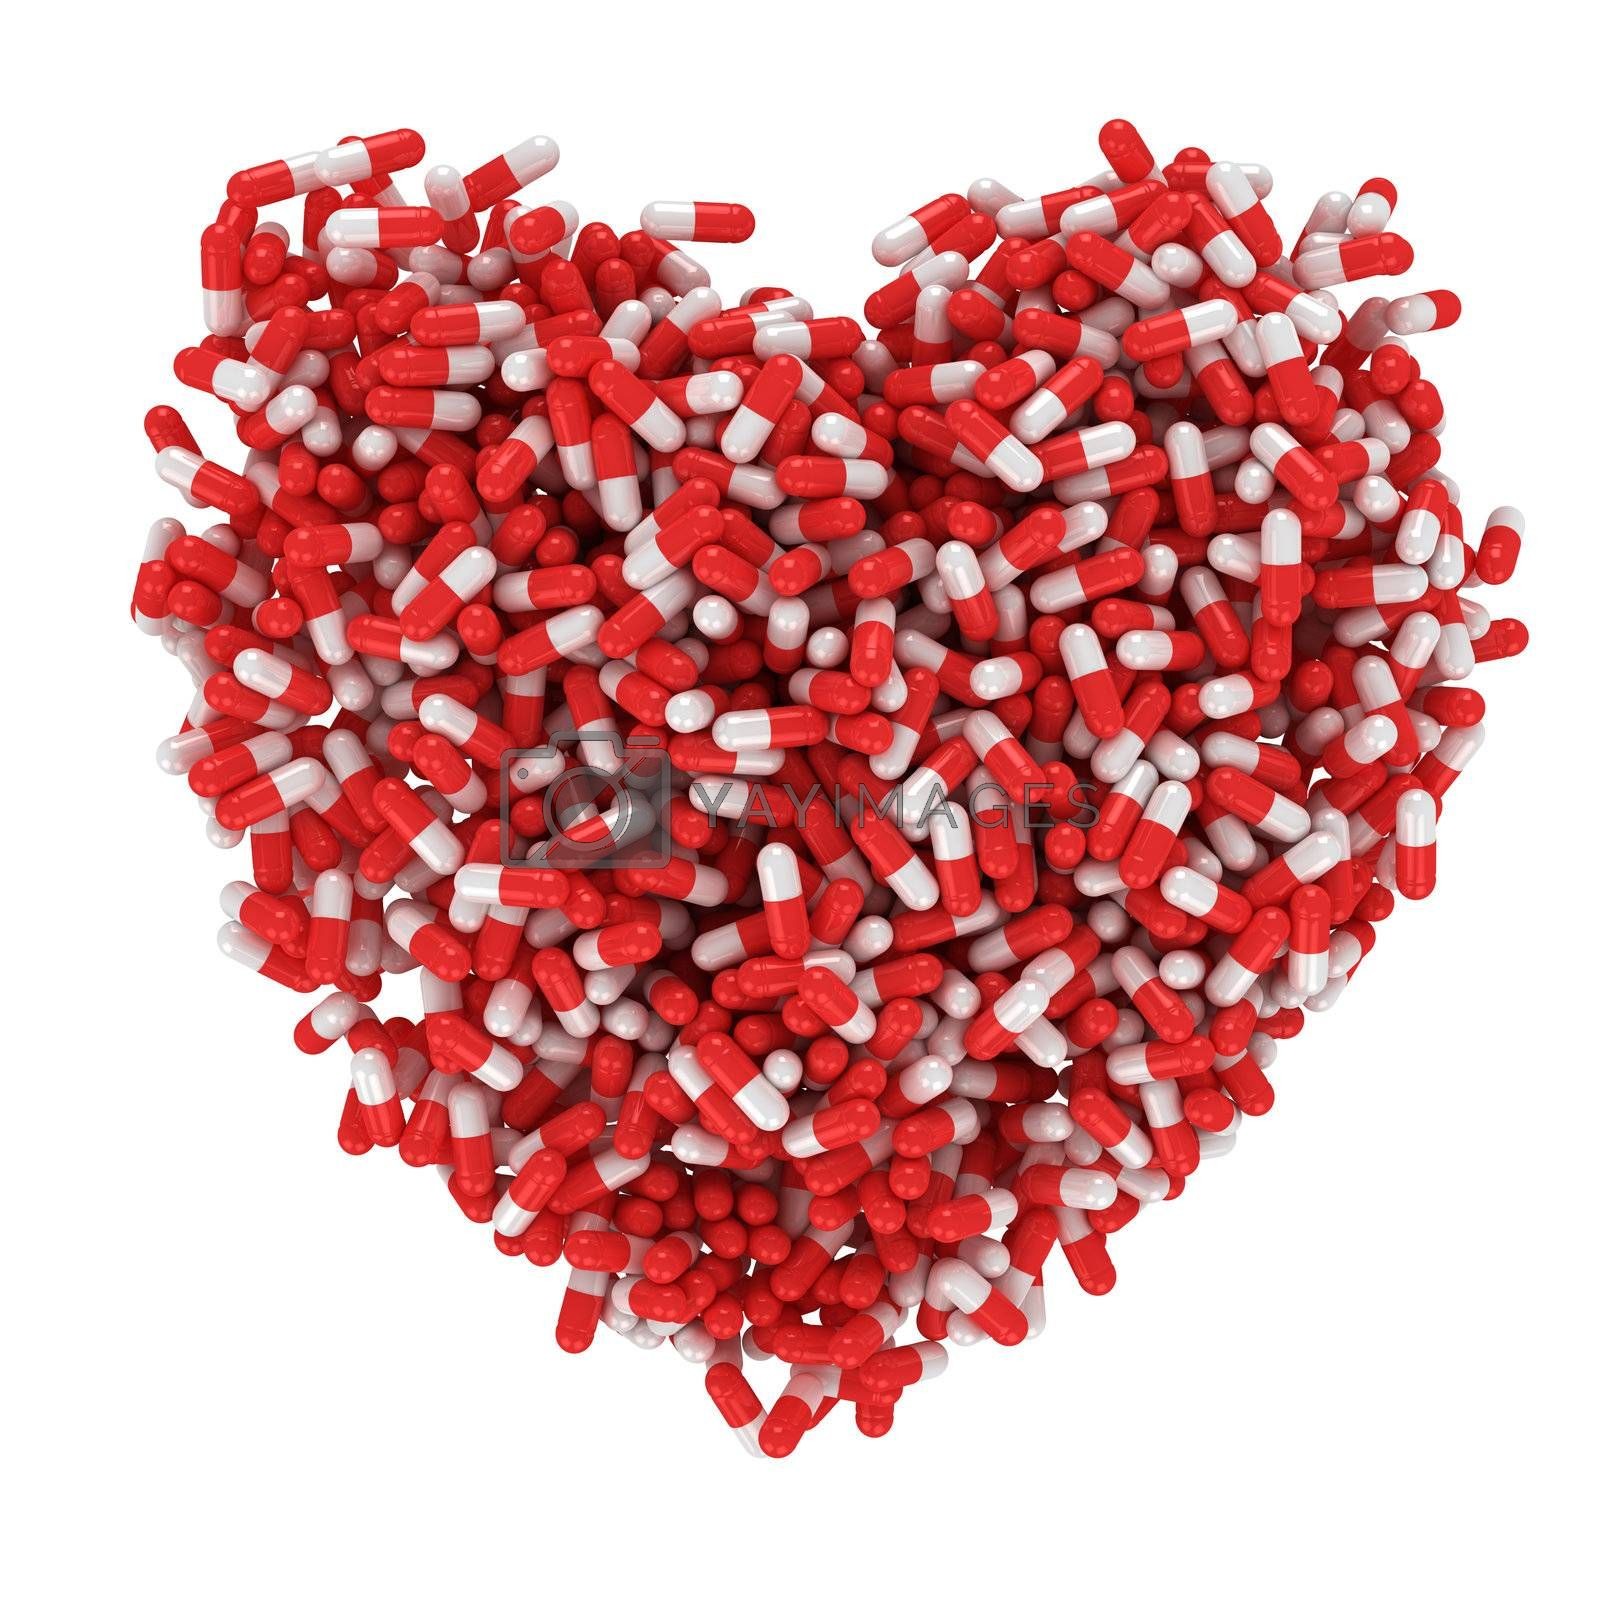 Big heart made from red and white capsules